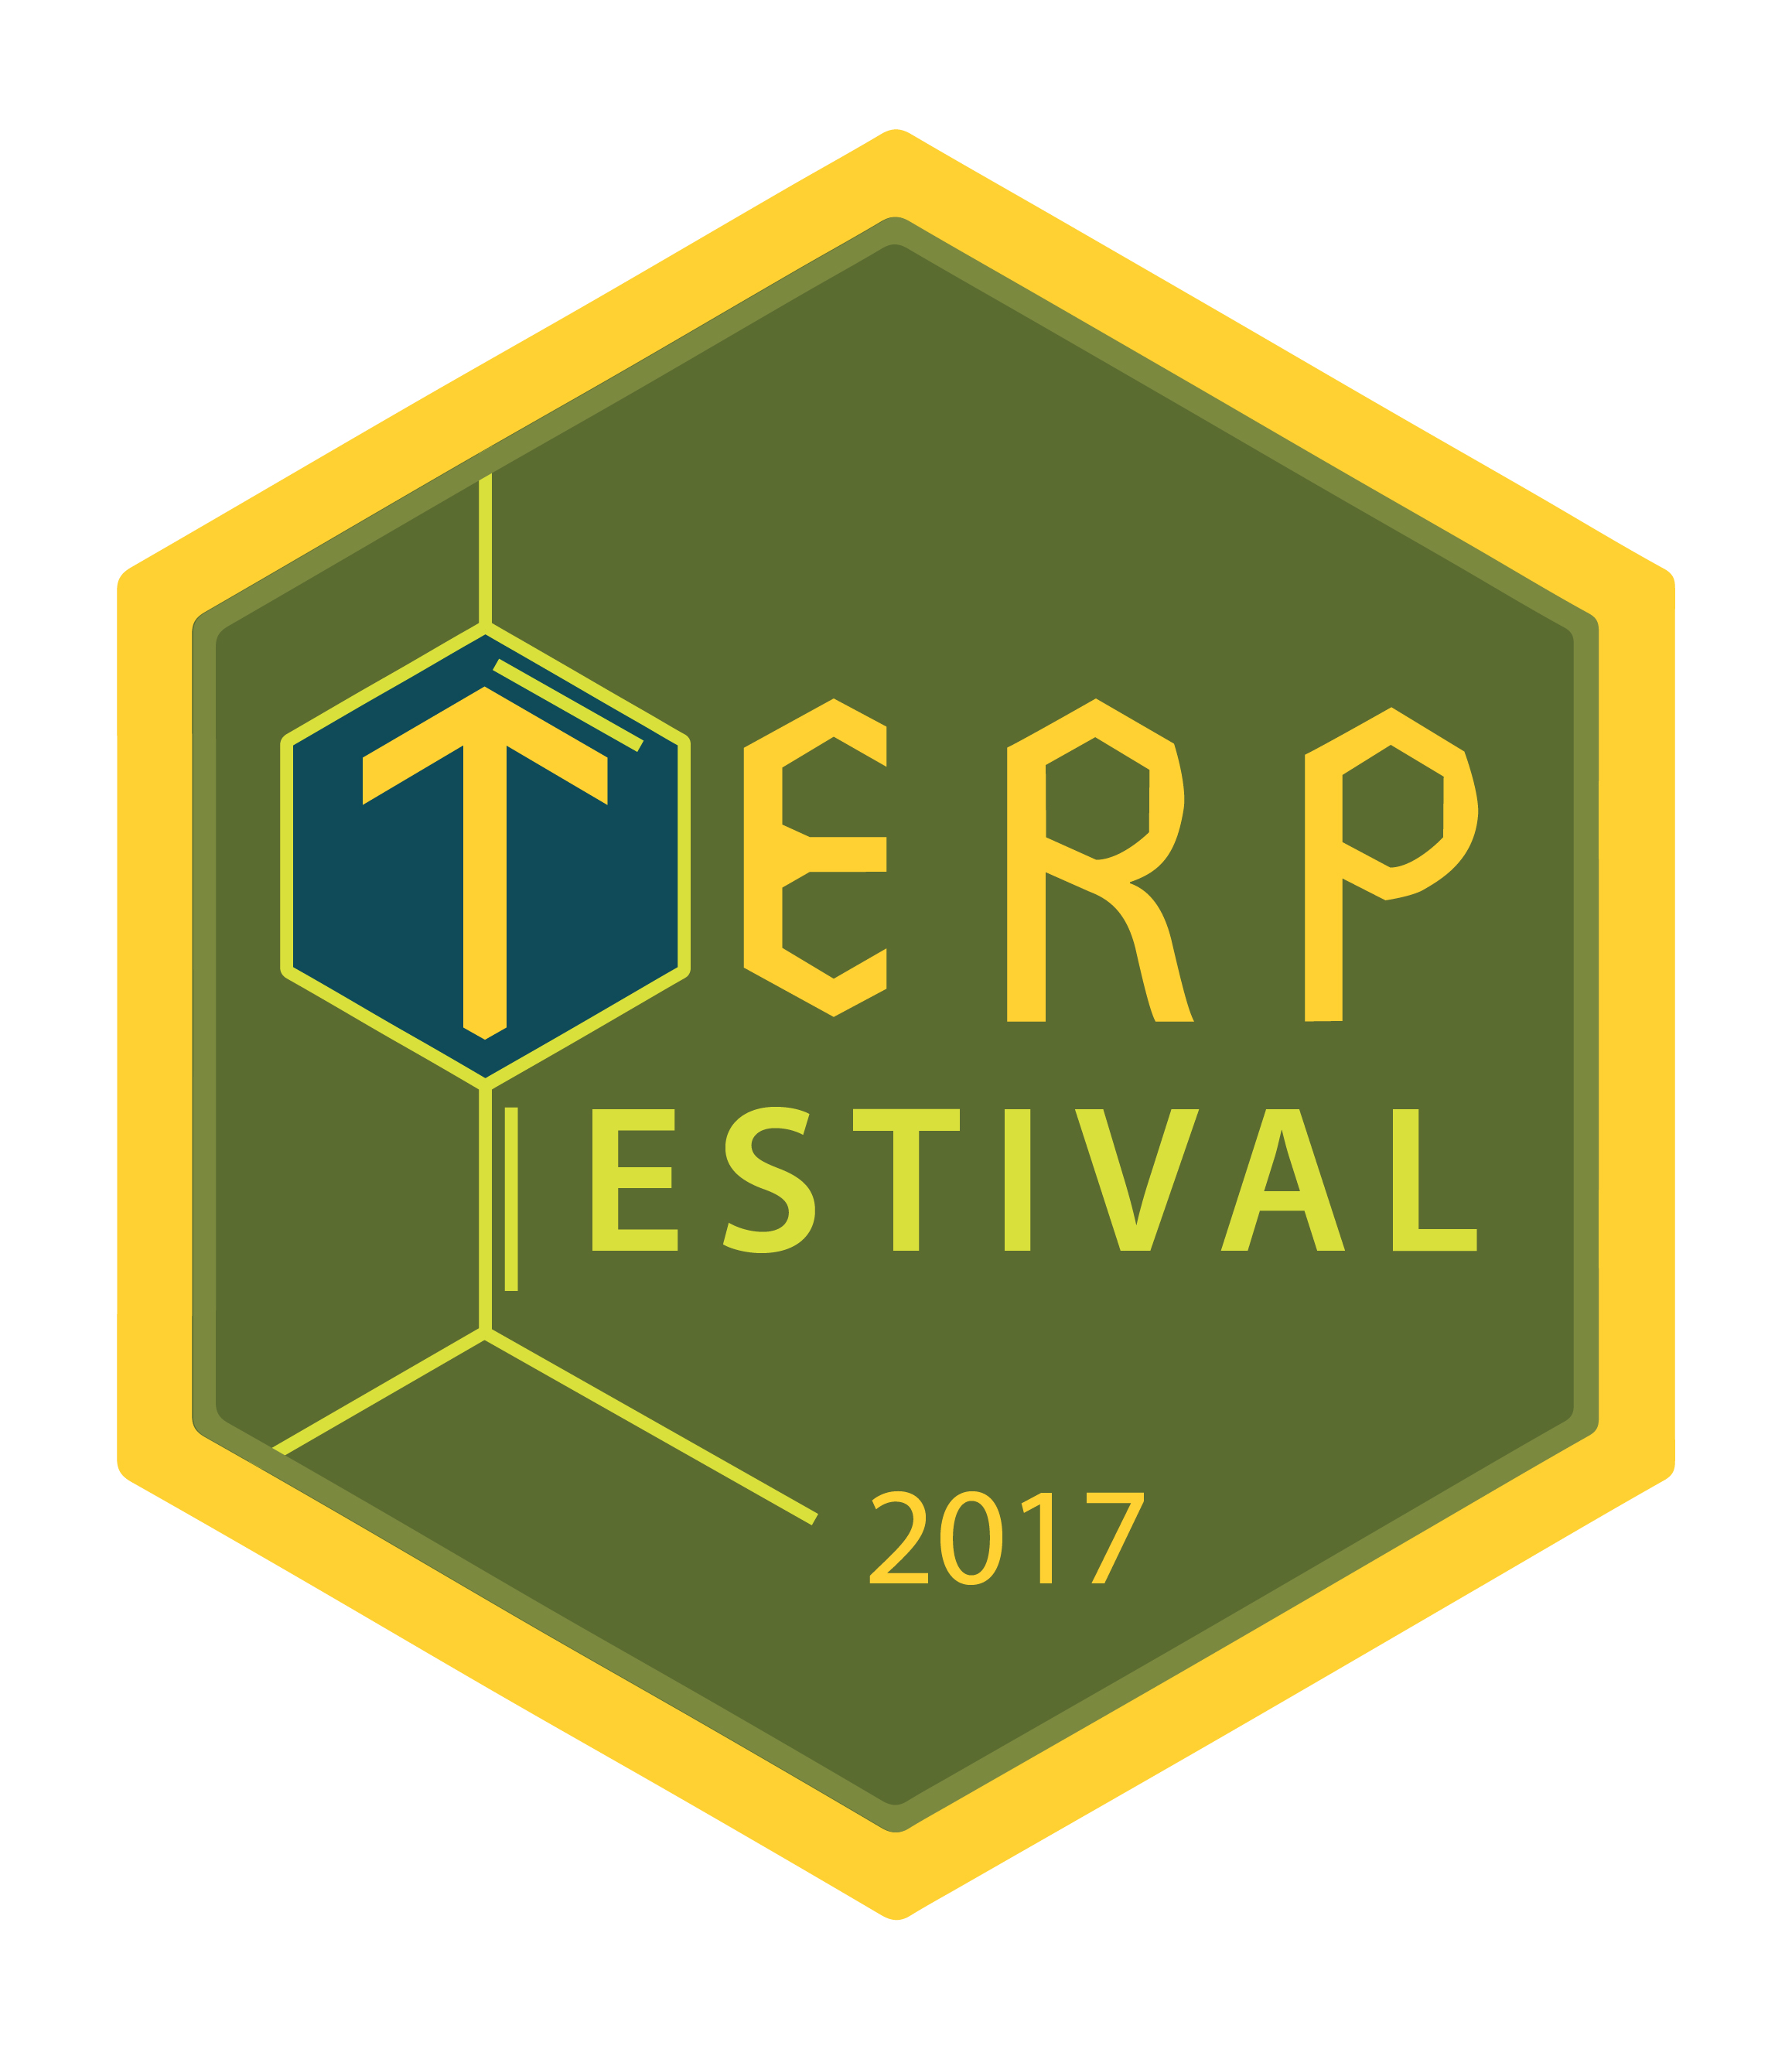 terpestival_logo_color_options_yellow_green_lime_blue.jpg